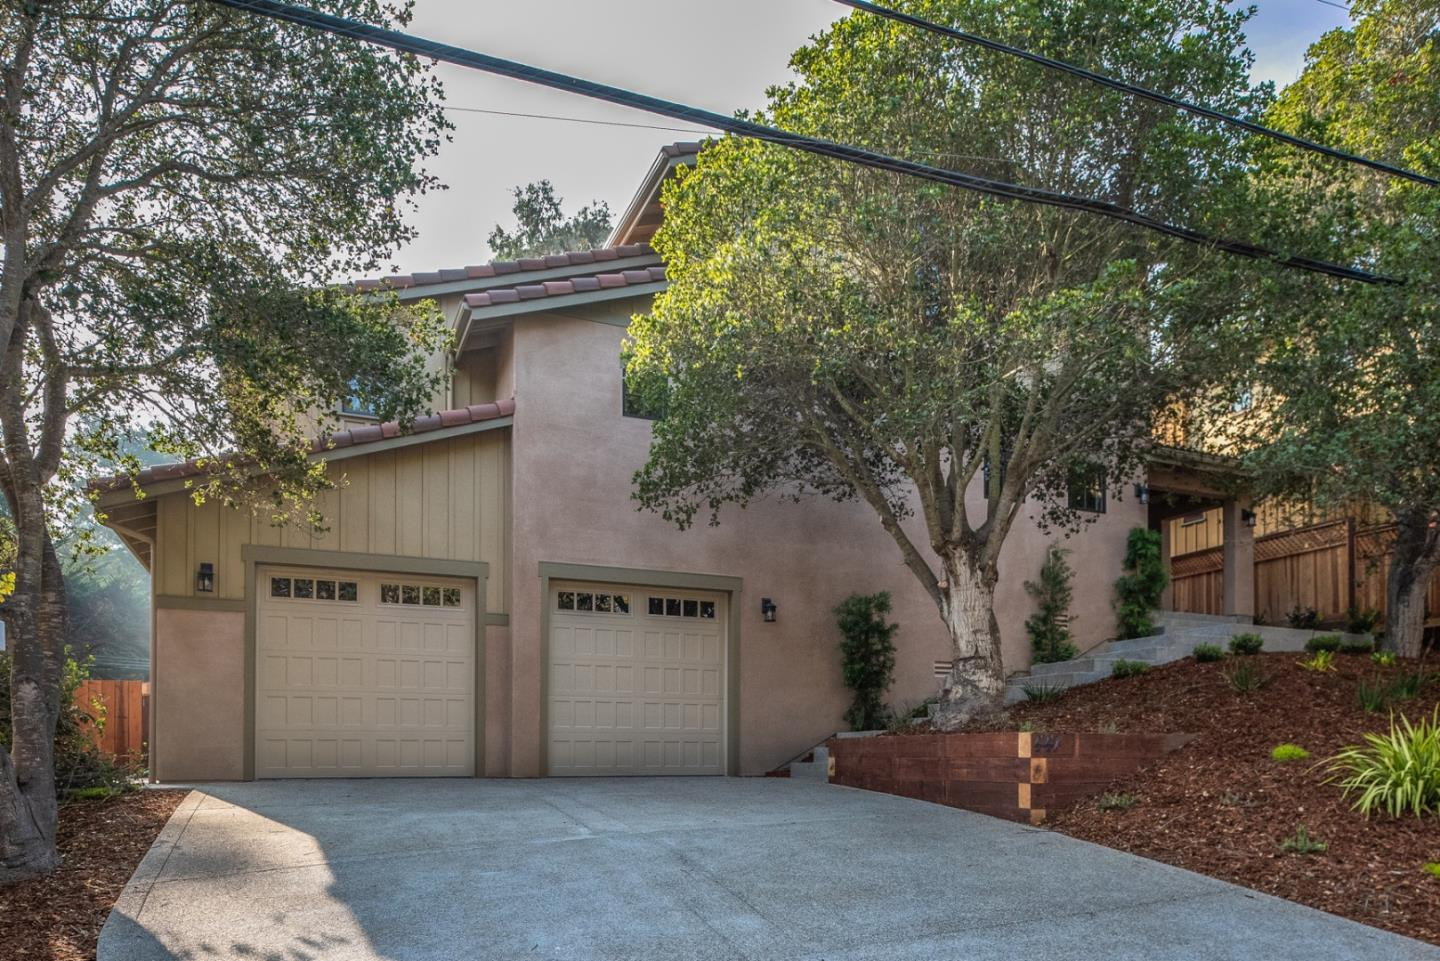 Detail Gallery Image 1 of 1 For 441 Colton St, Monterey, CA, 93940 - 3 Beds | 2/1 Baths